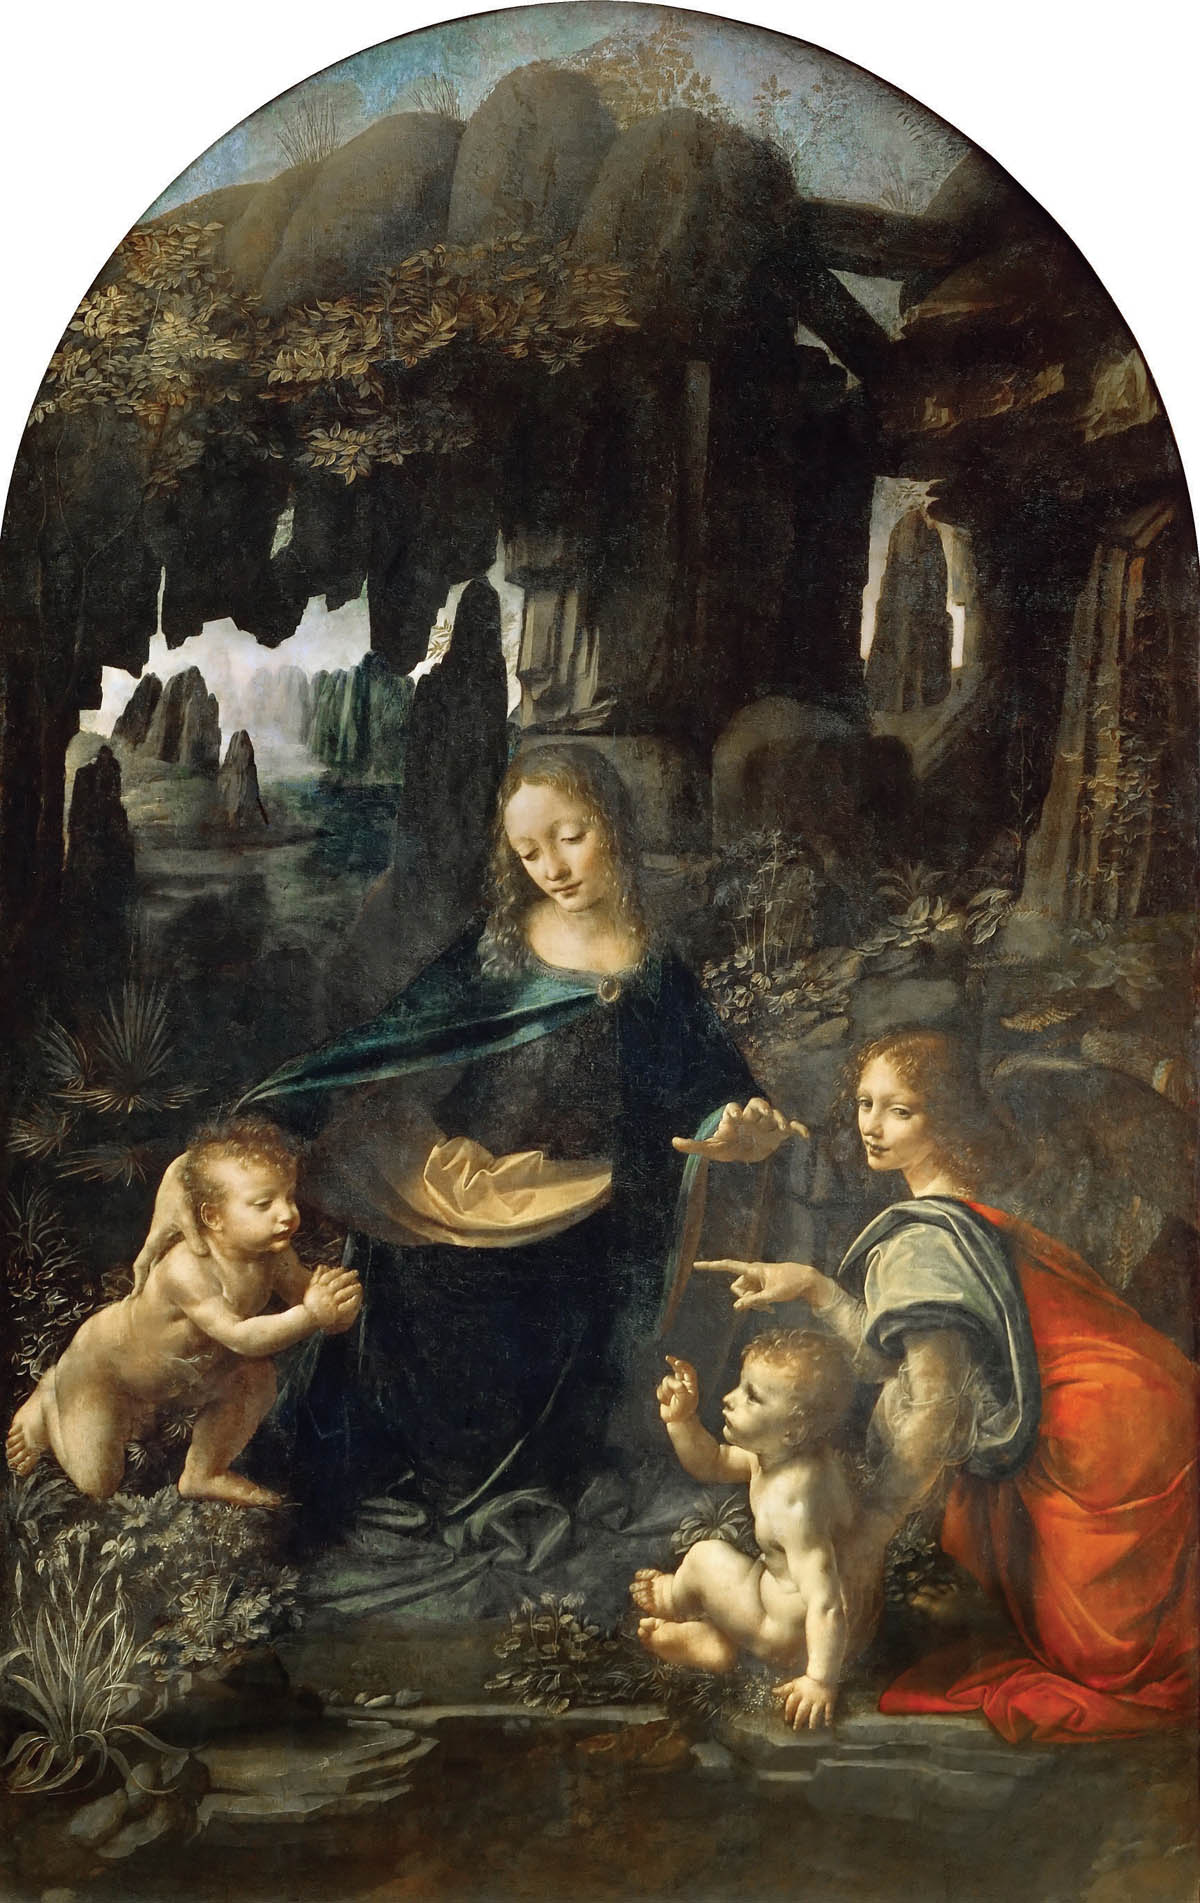 The geology of Leonardo's Virgin of the Rocks